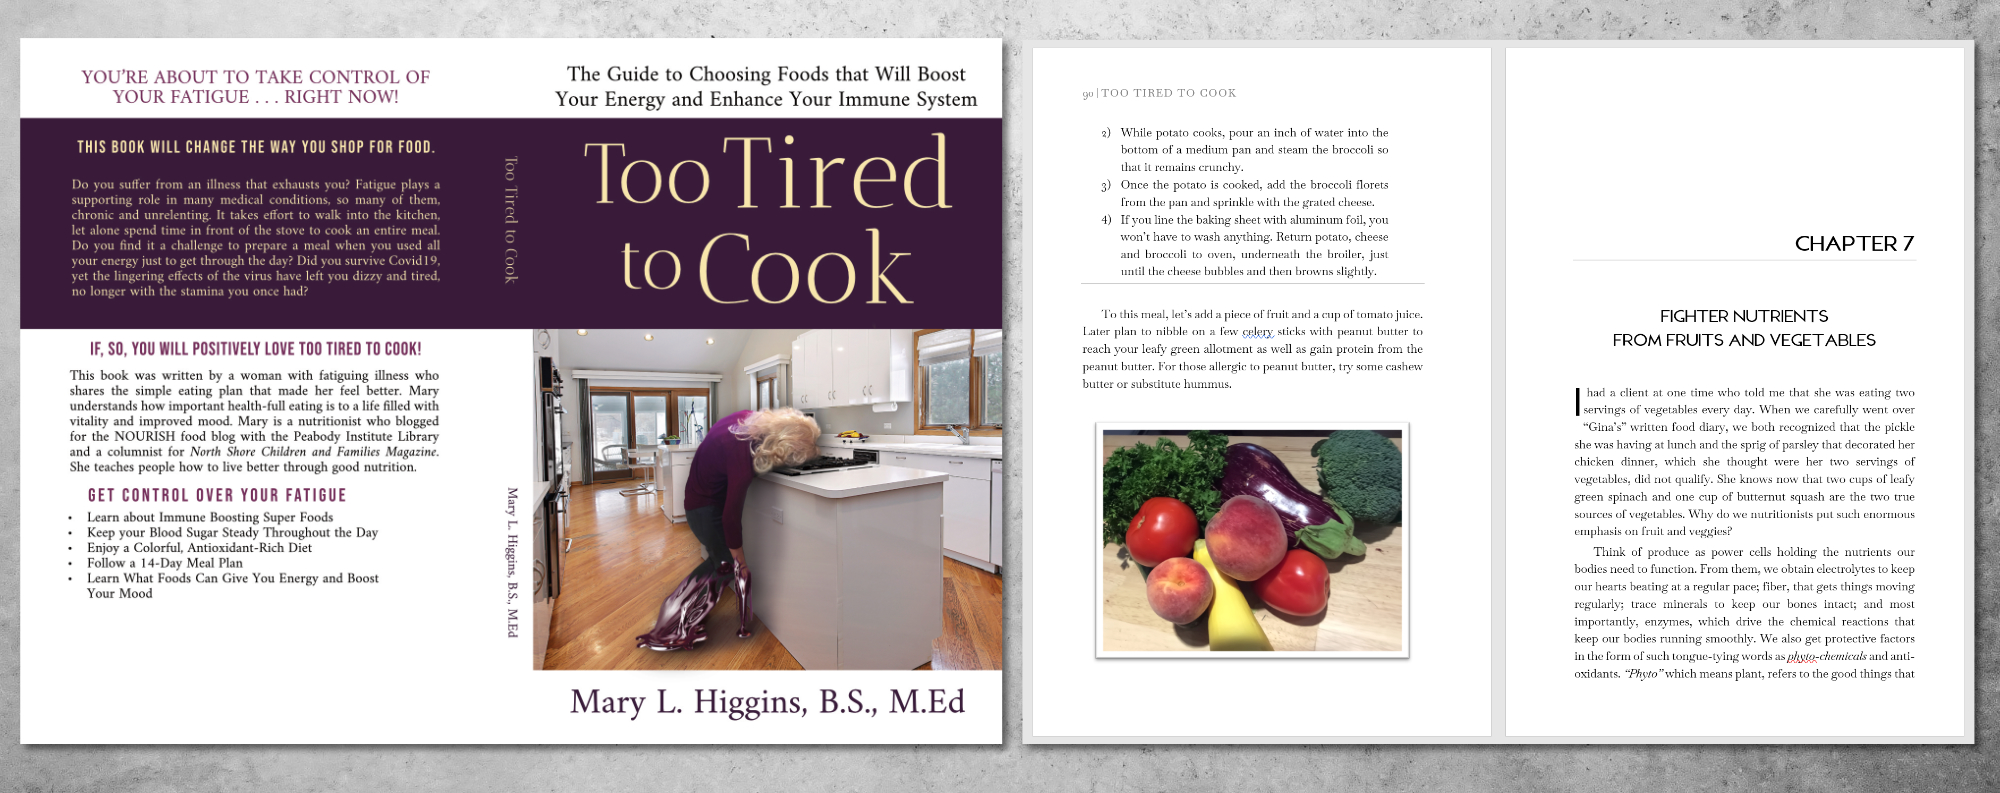 Example image of book Too Tired to Cook by Mary L. Higgins, B.S., M.ed